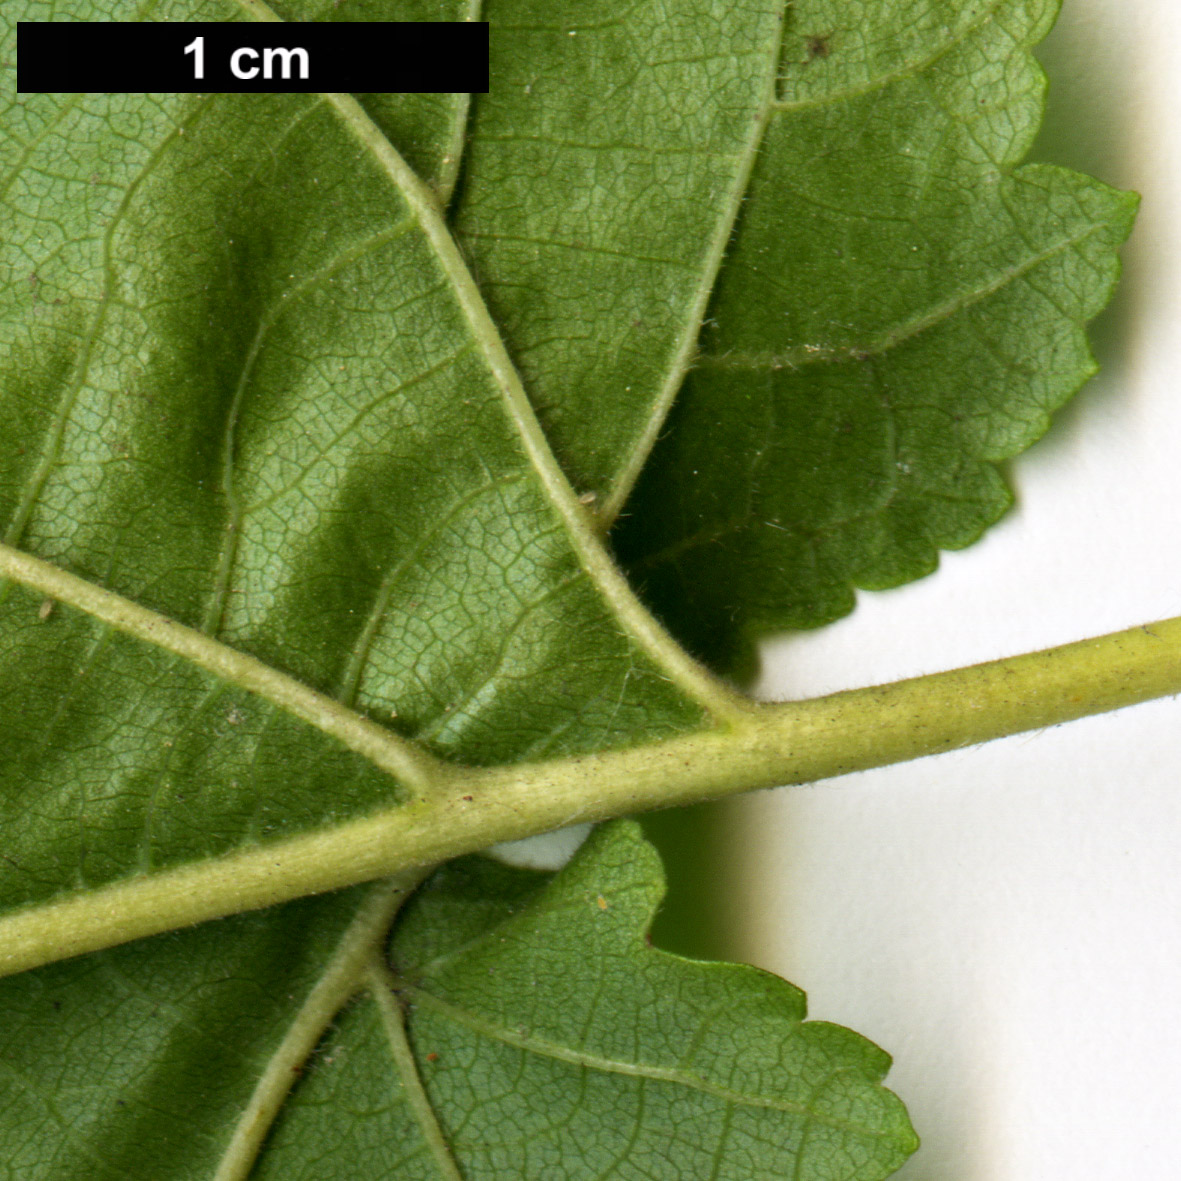 High resolution image: Family: Betulaceae - Genus: Corylus - Taxon: colurna